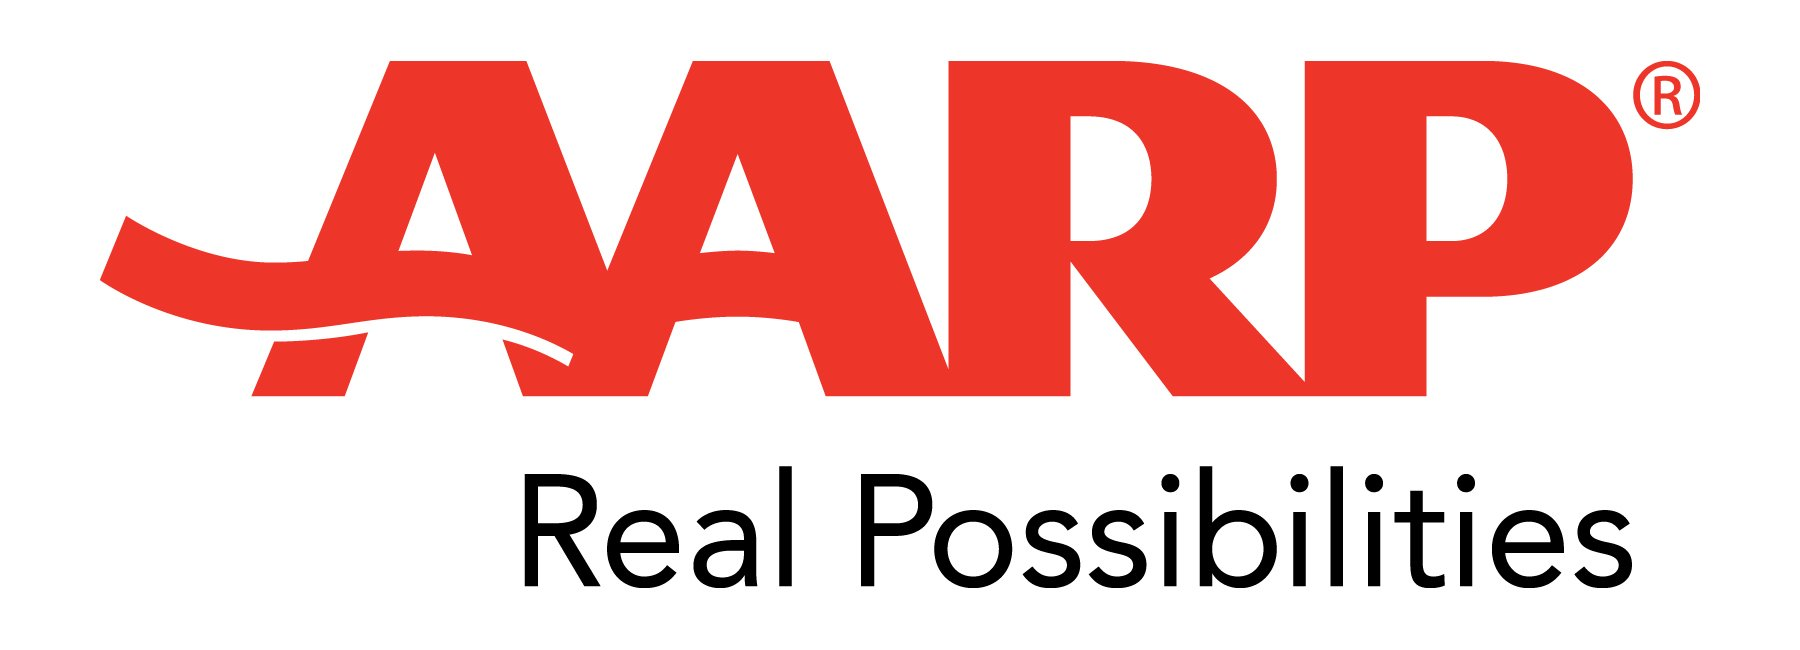 New York Life Aarp >> AARP Logo, symbol, meaning, History and Evolution